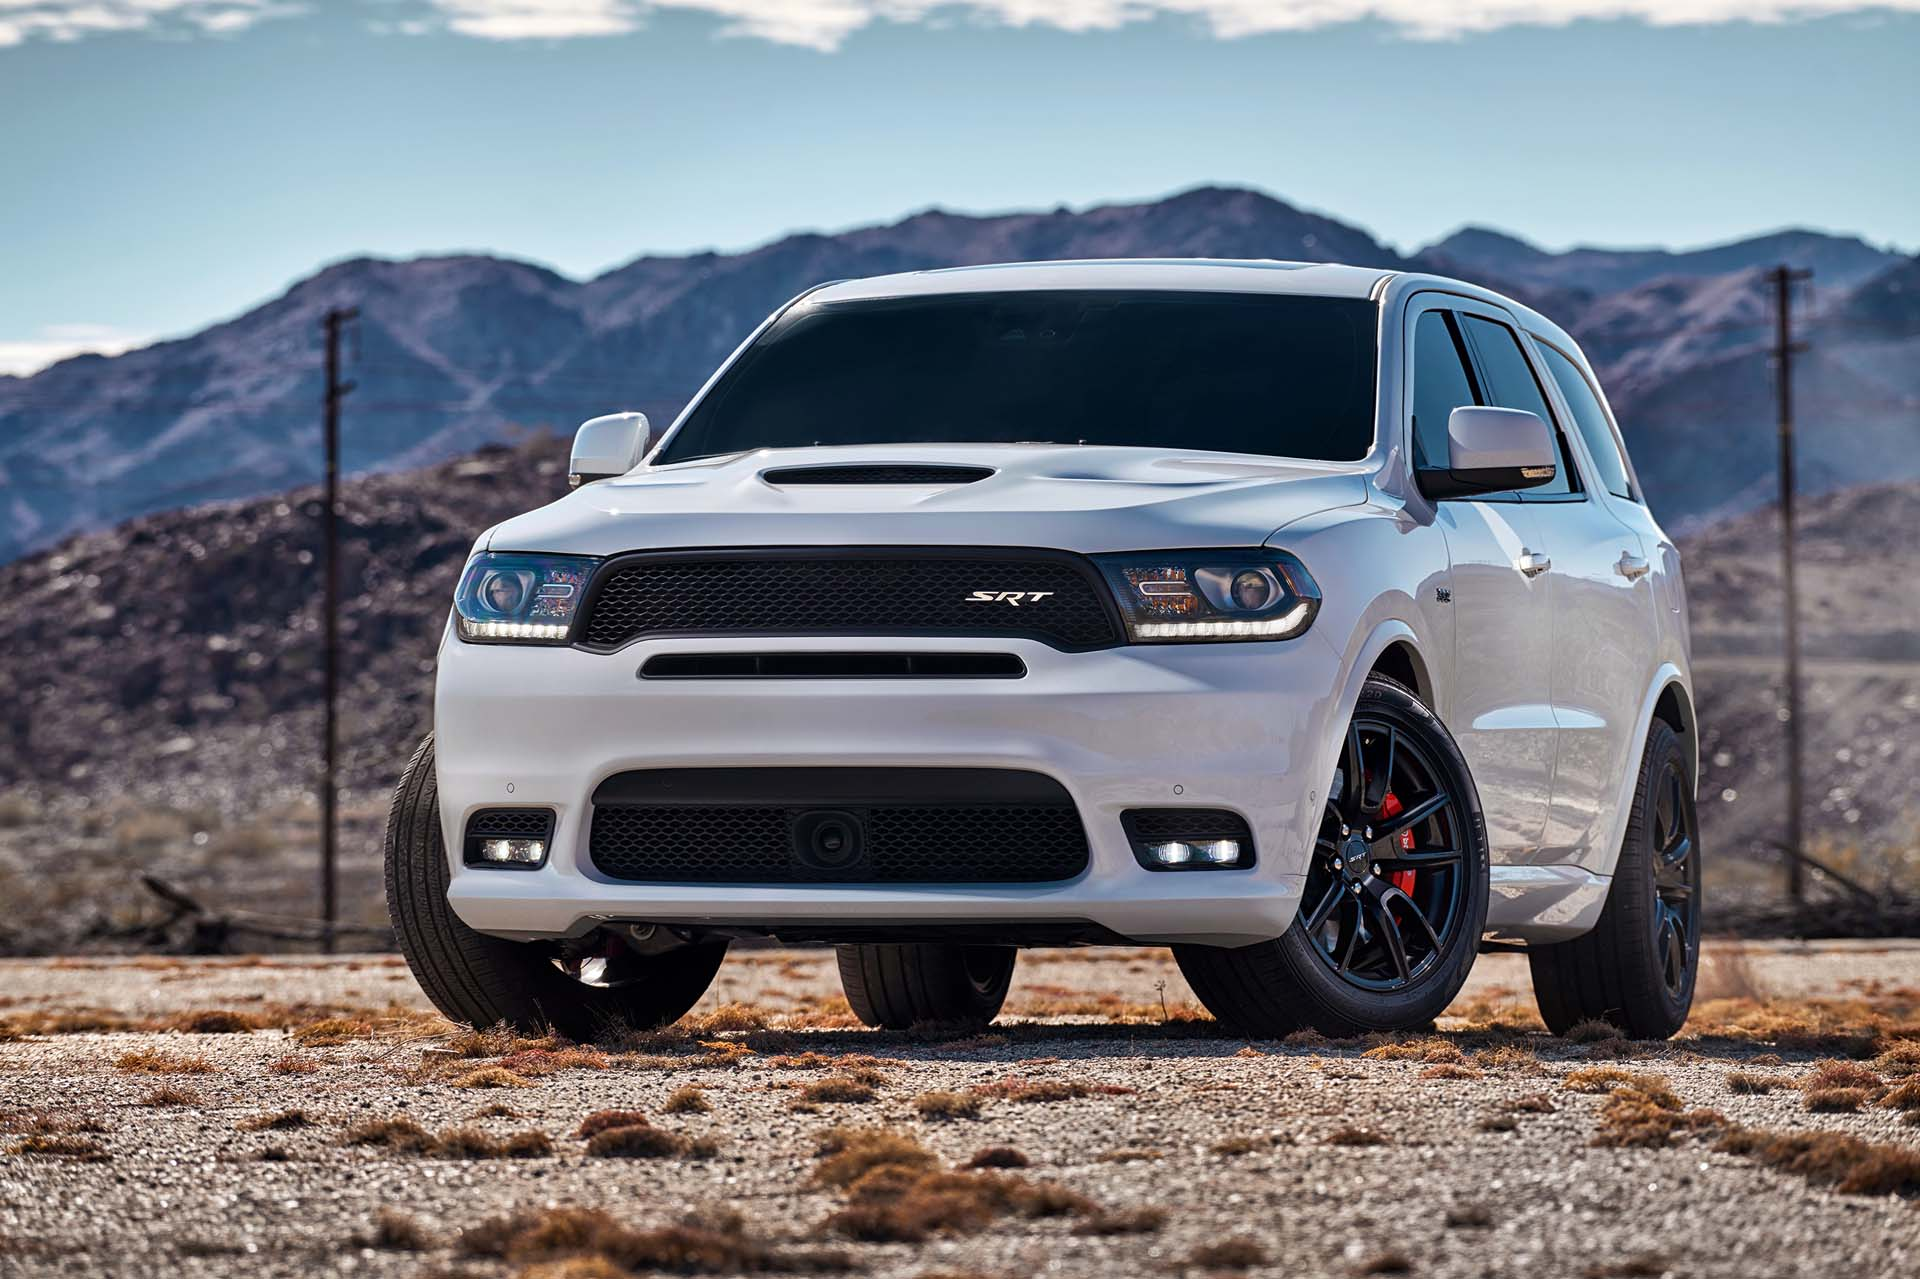 2018 dodge durango srt 475 horsepower 3 row suv starts at 64 090. Black Bedroom Furniture Sets. Home Design Ideas